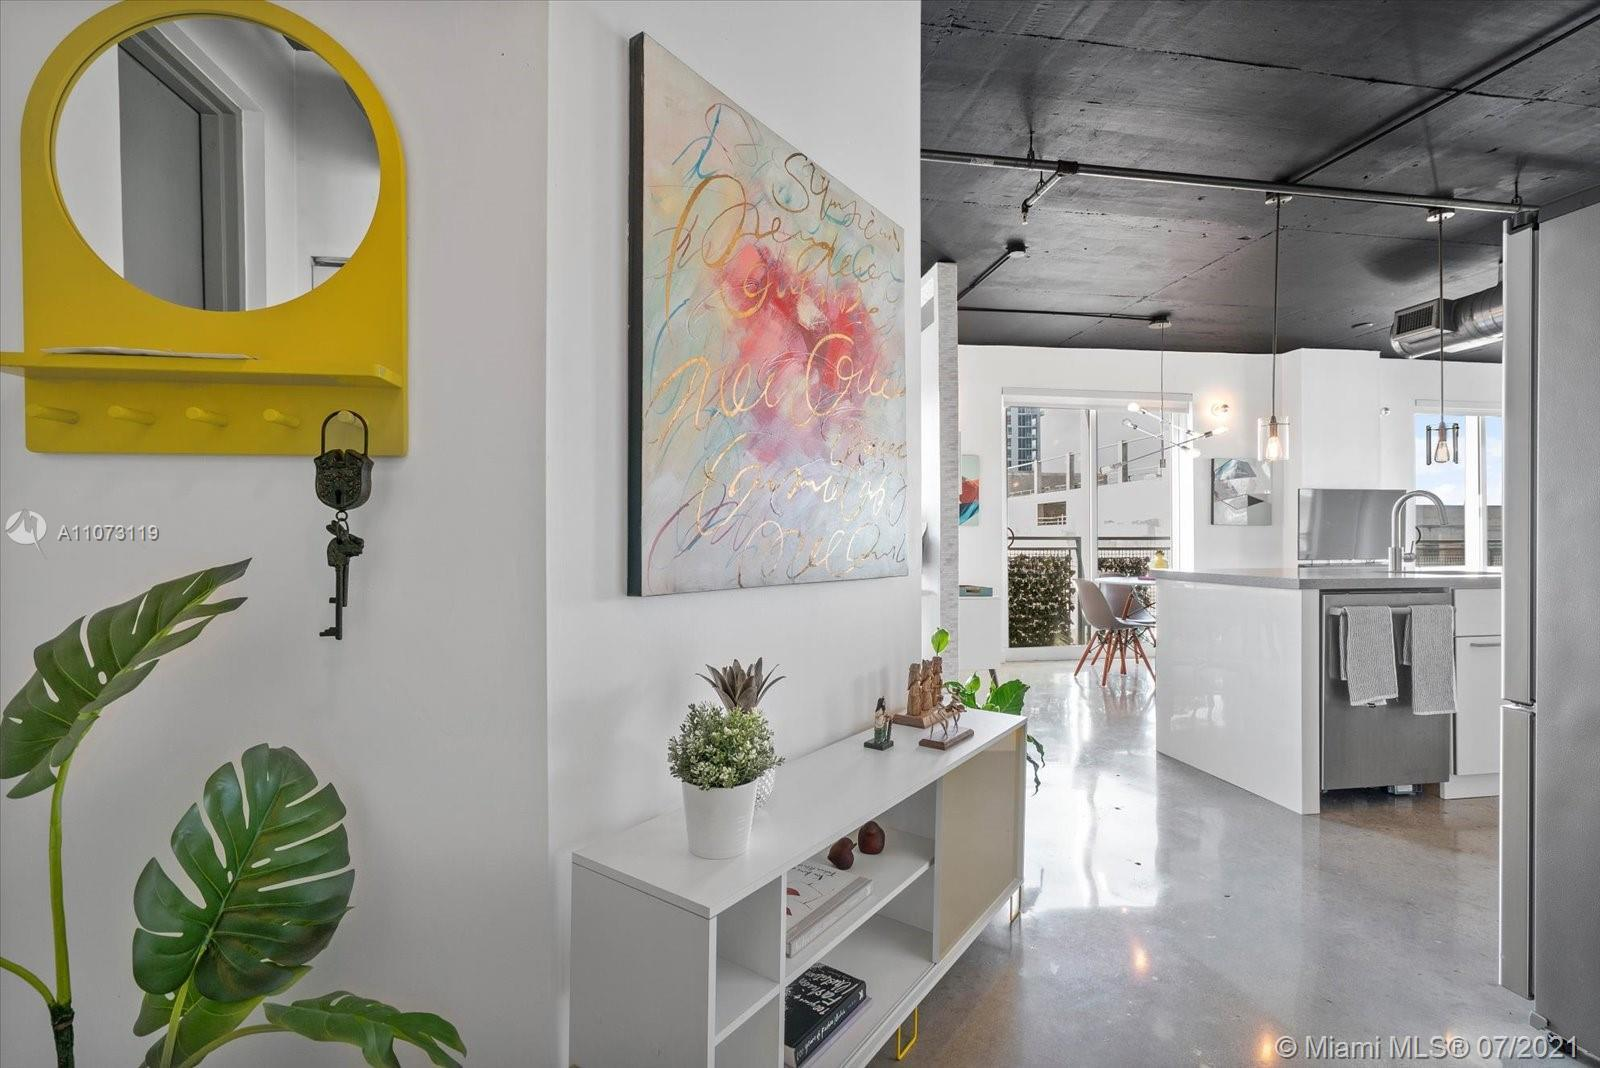 Enjoy Bay and City views from this impressive, industrial loft style apartment, located in the Edgew